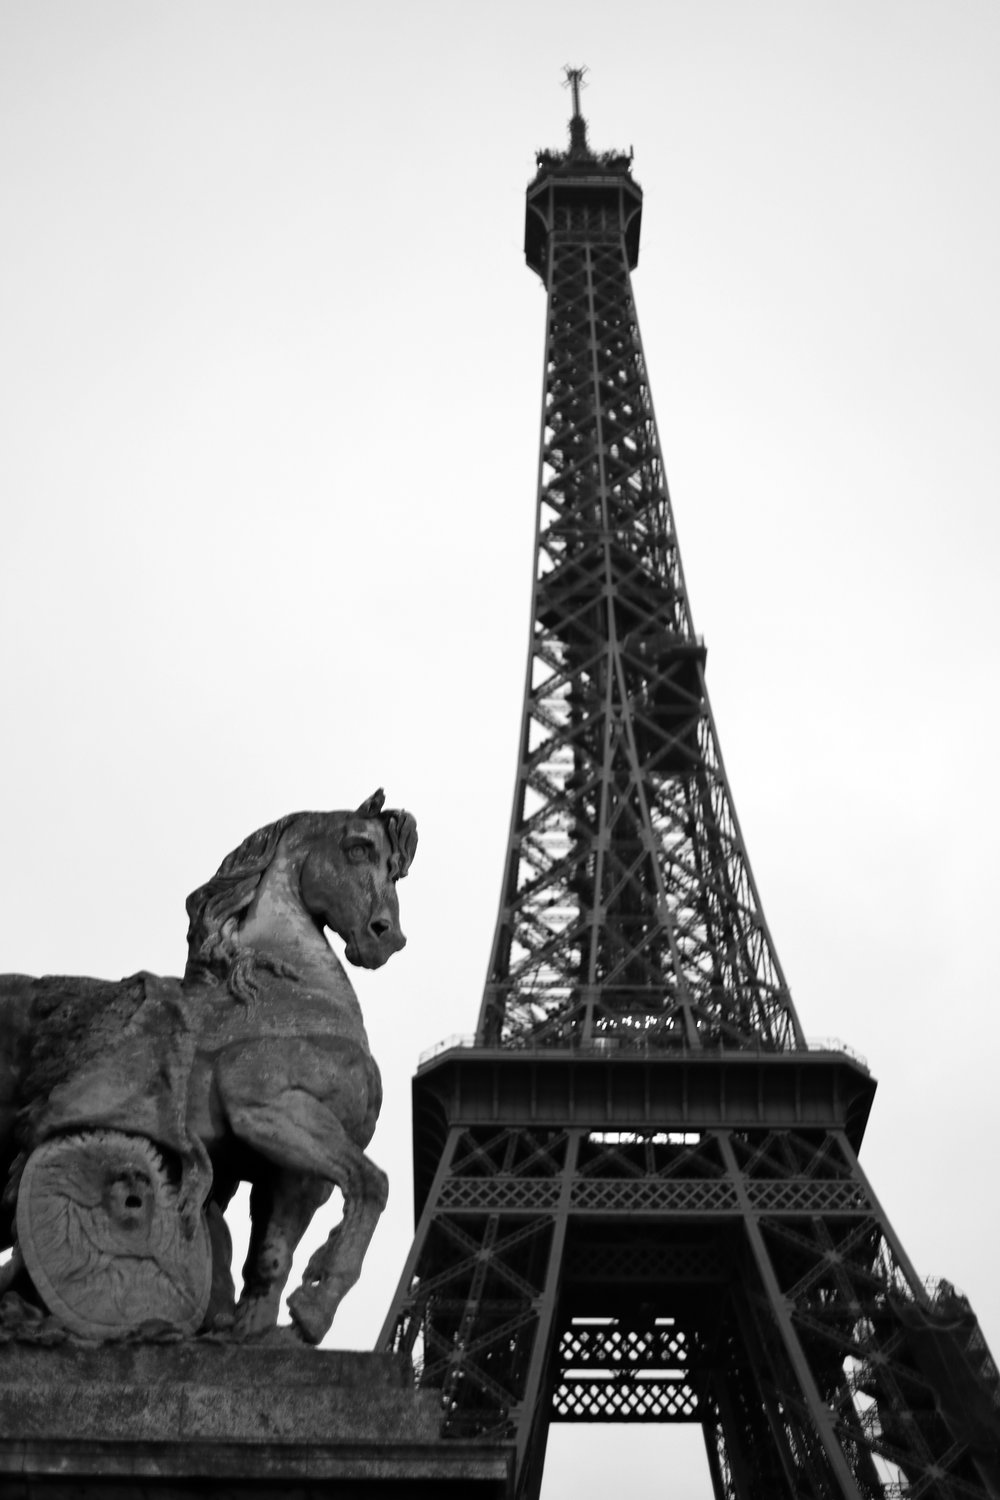 Horse statue under the Eiffel Tower, Paris, France   https://www.ebay.com/itm/263679763929?ssPageName=STRK:MESELX:IT&_trksid=p3984.m1555.l2649